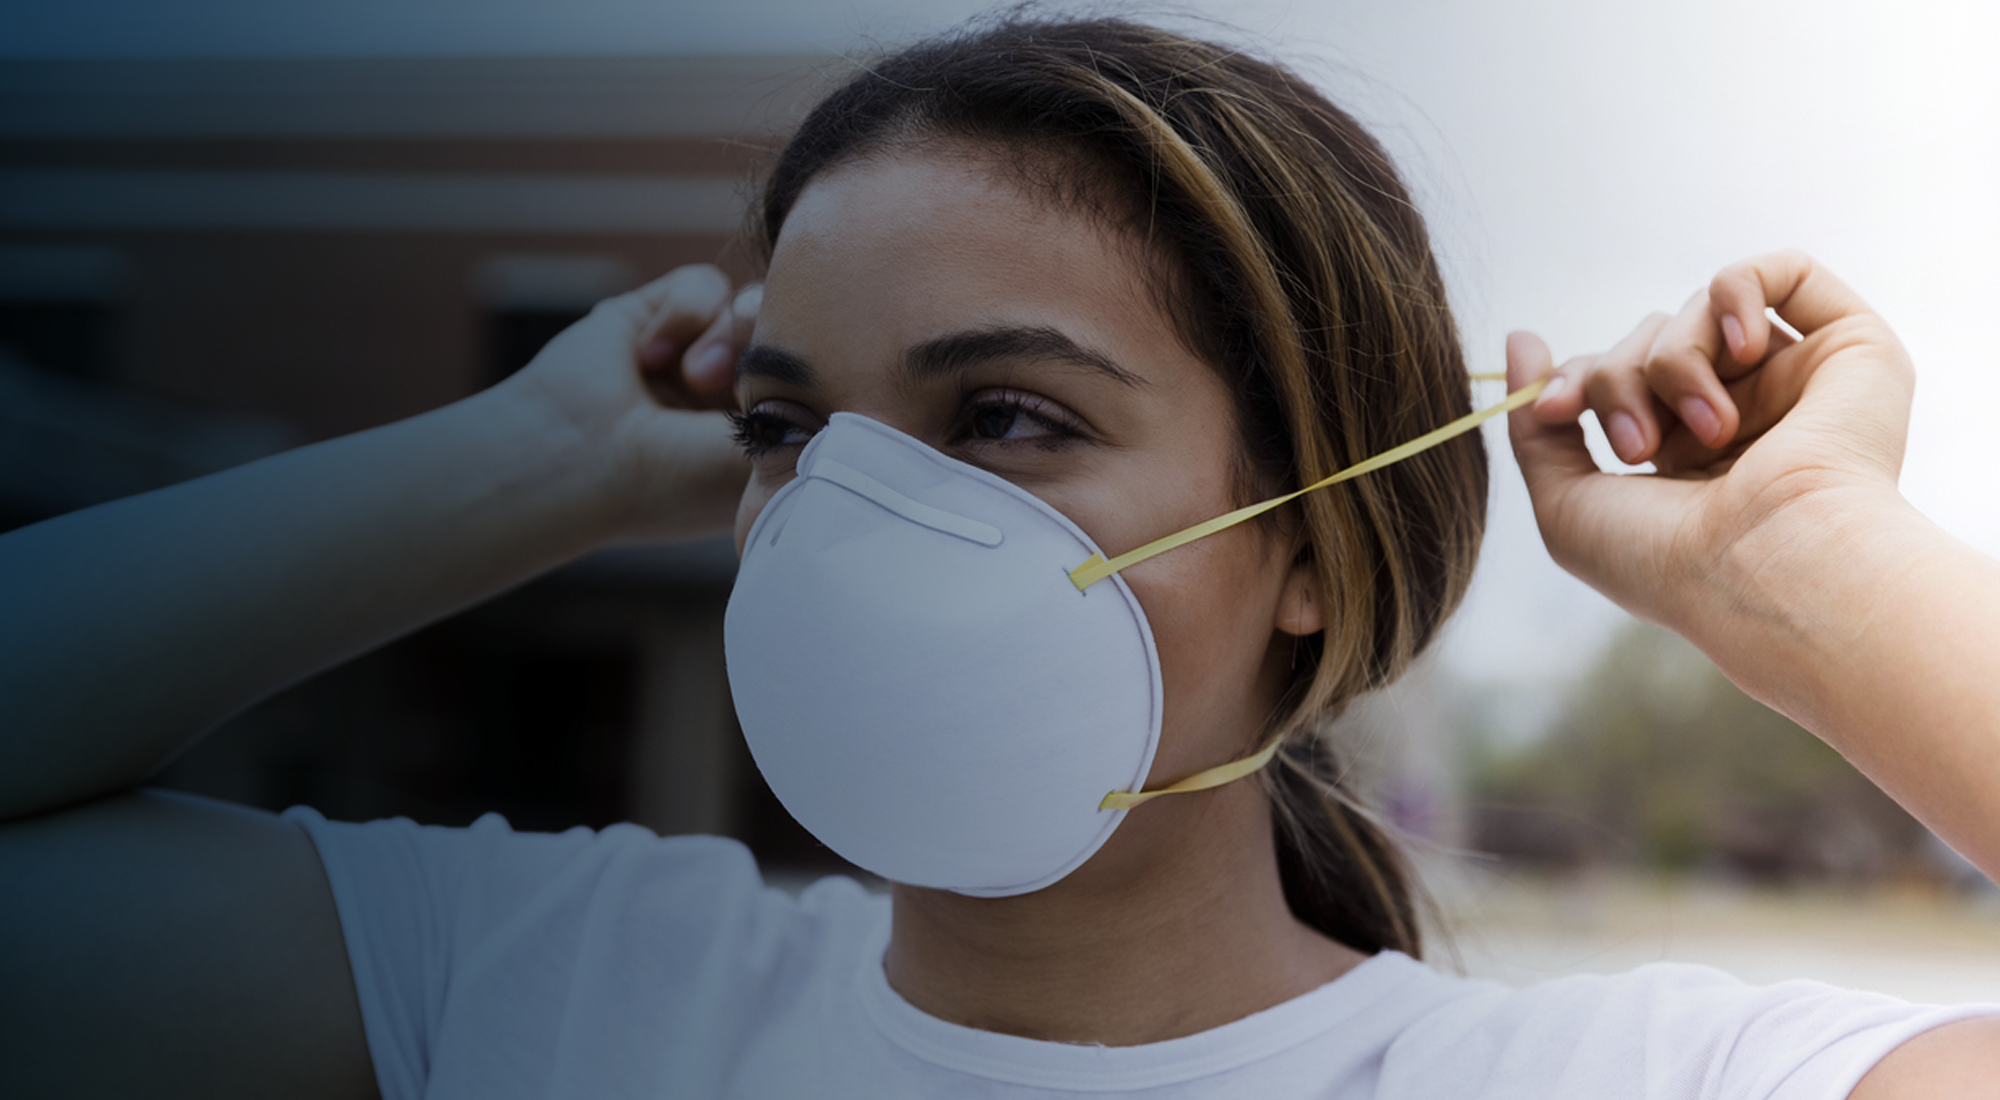 N95 respirators: How to tell if employees are wearing them correctly